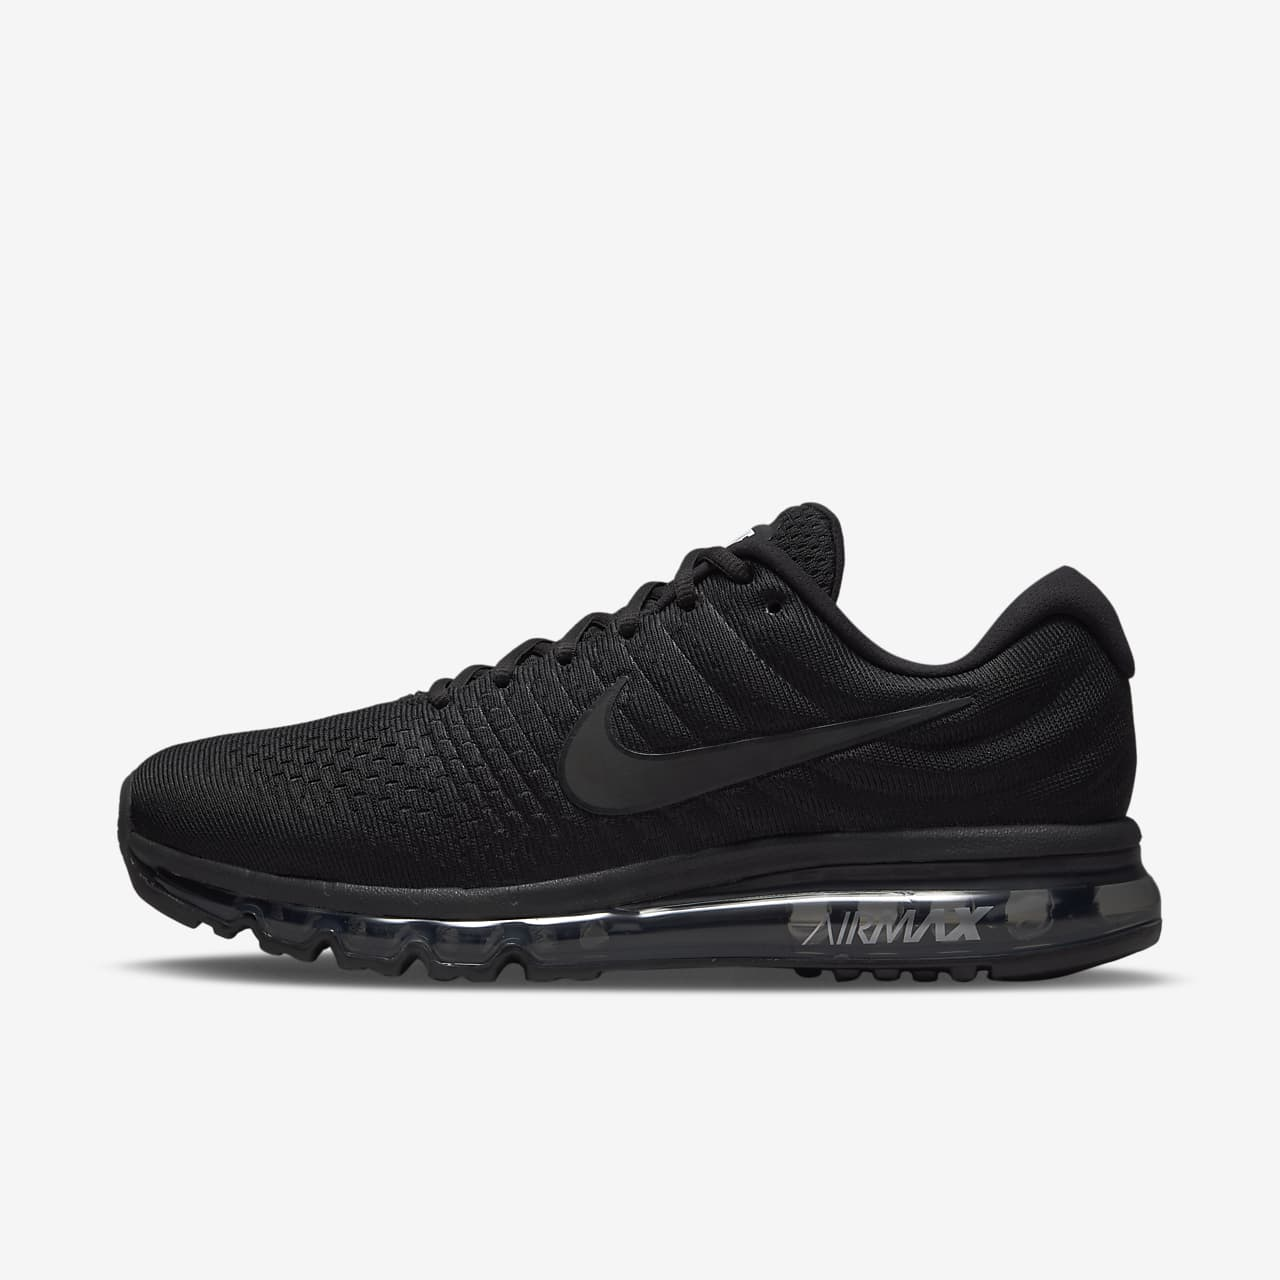 nike air max shoes 2017 model nz